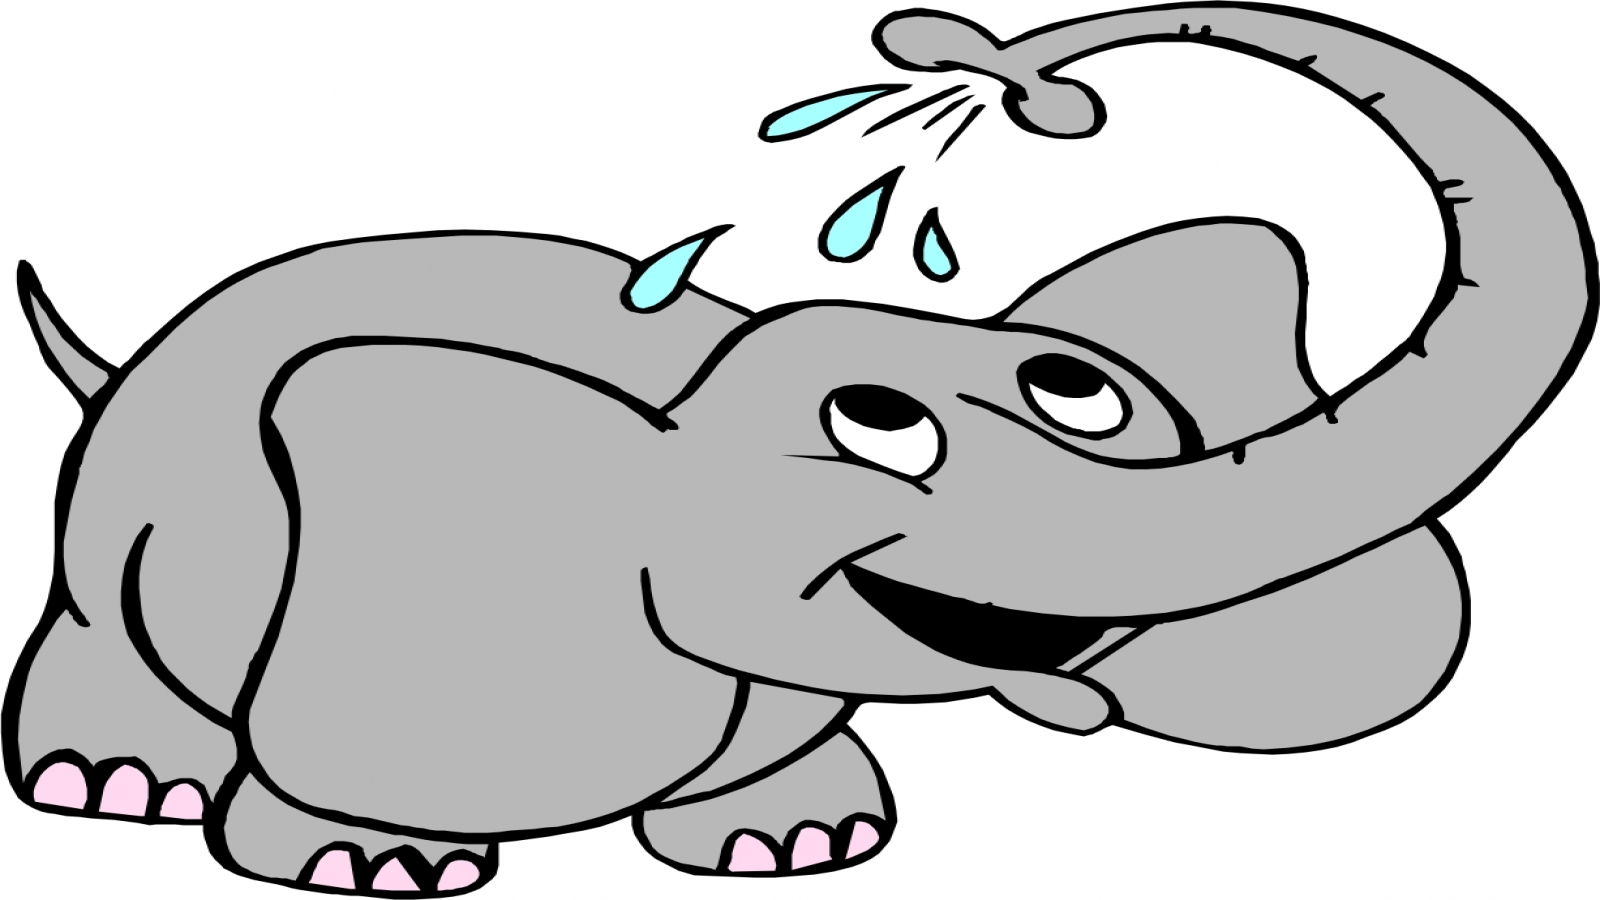 Elephant Spraying Water Clipart (61+).